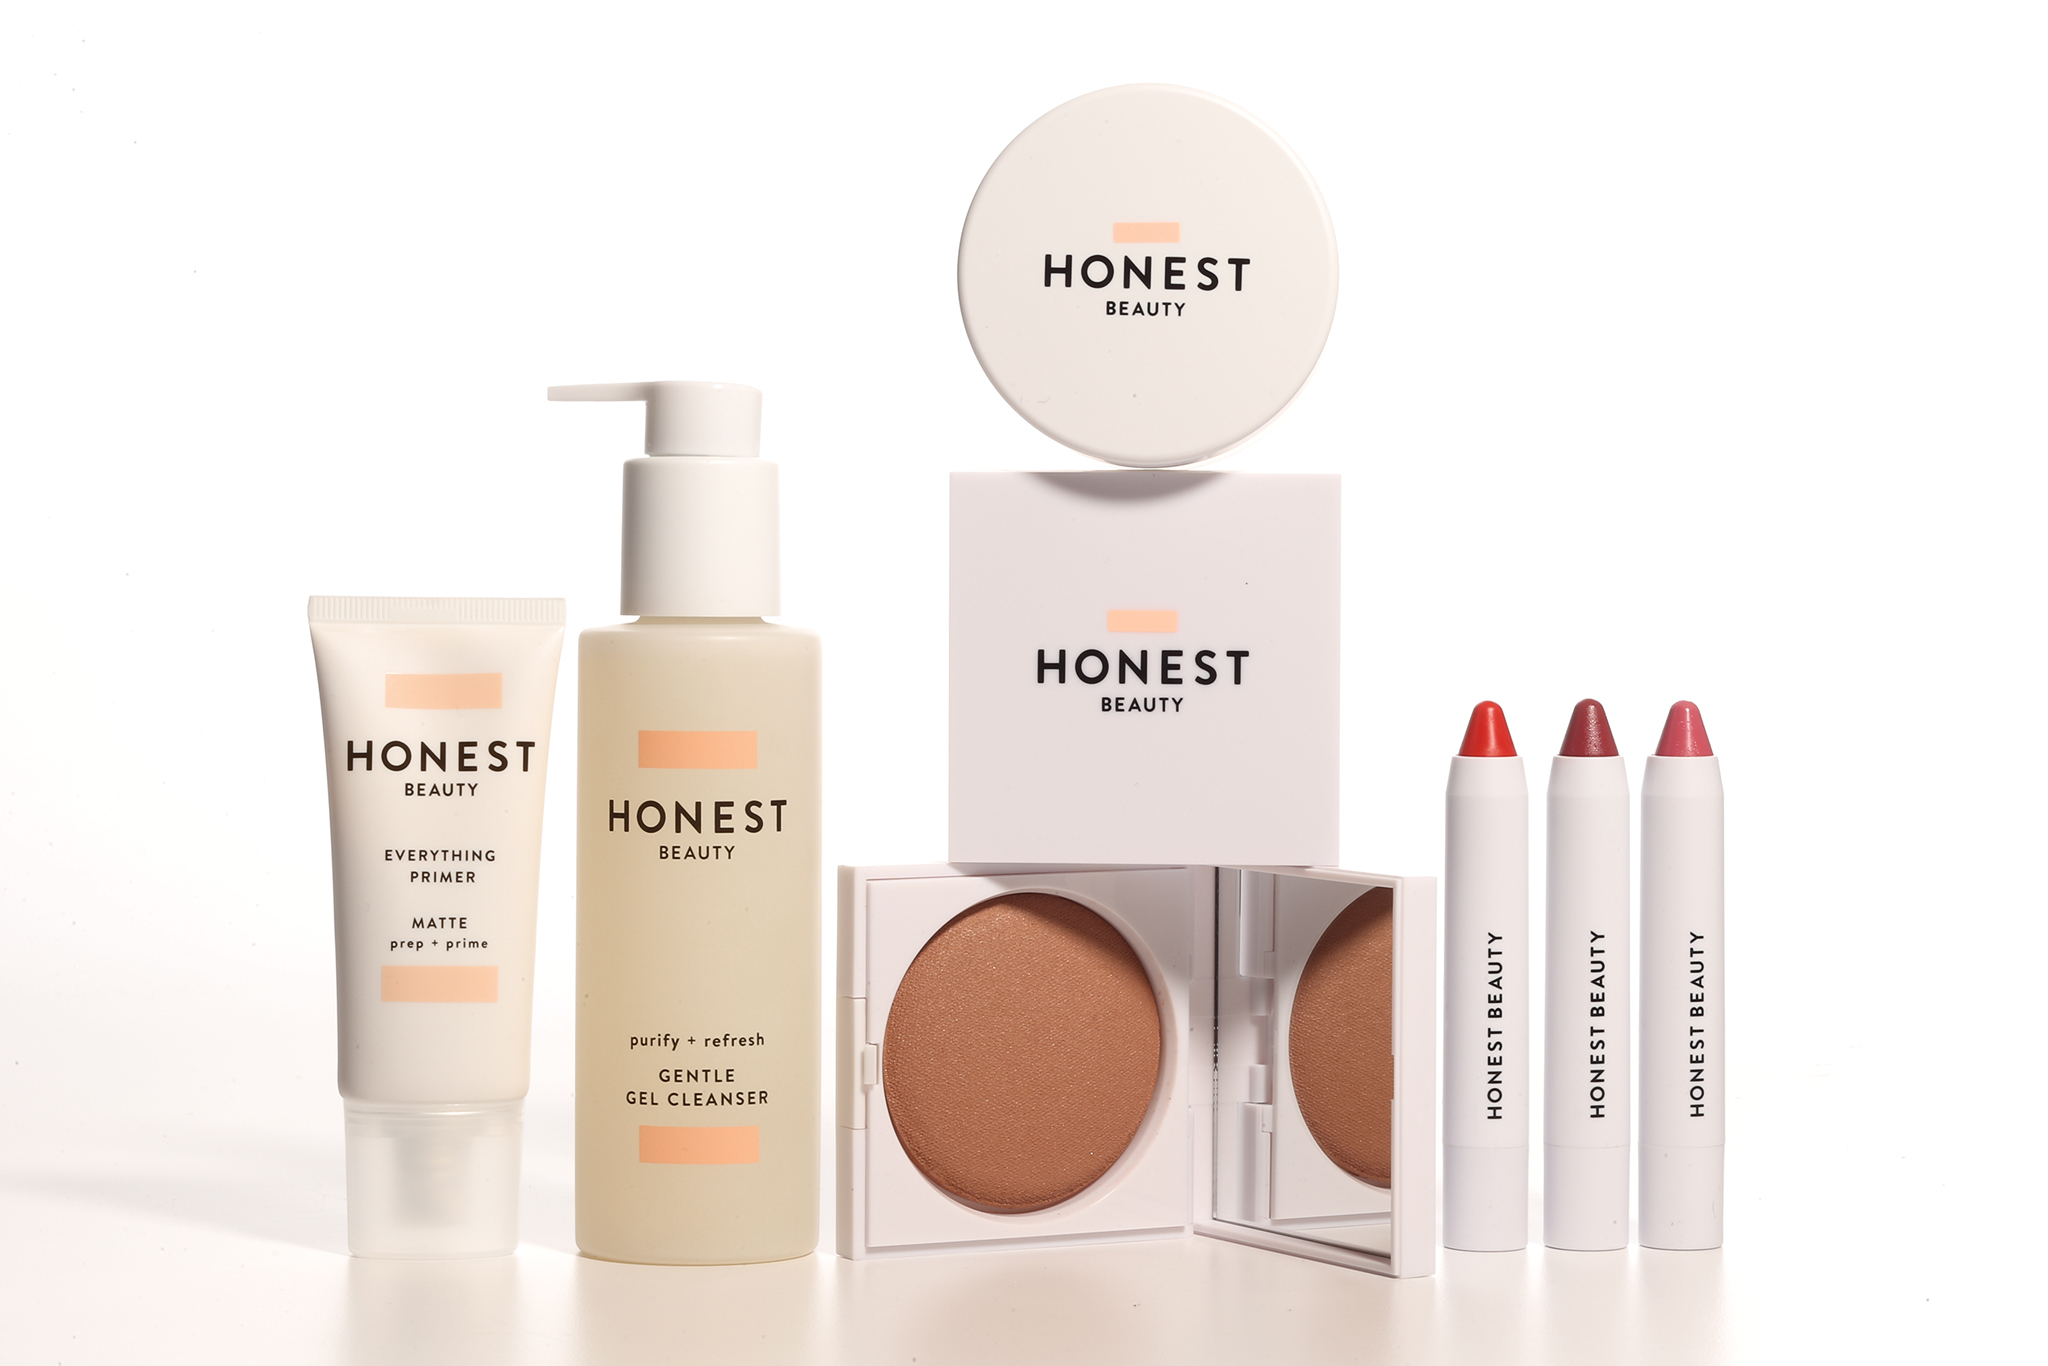 Honest Co Beauty products from jessica alba